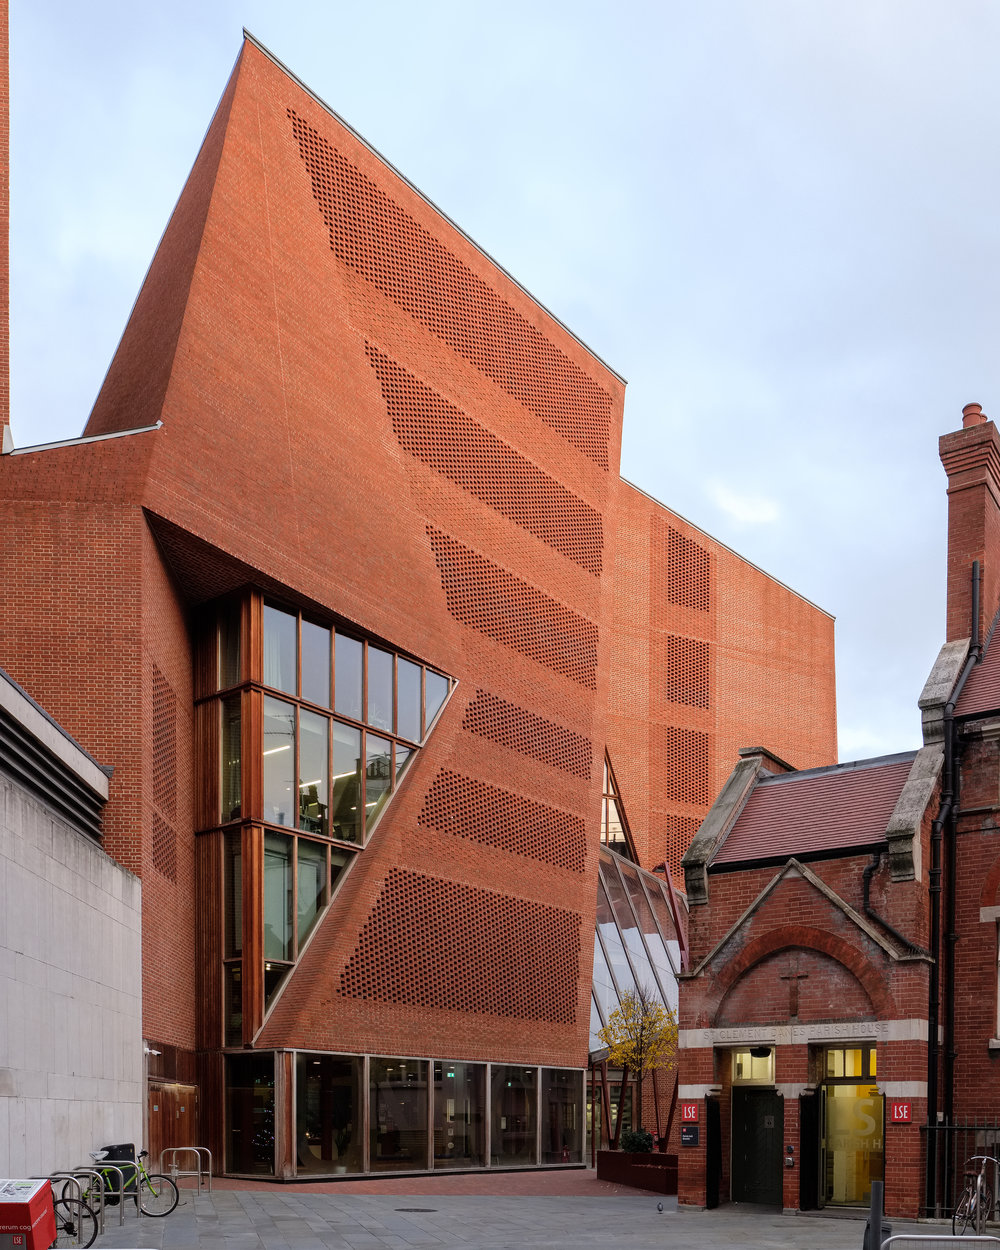 Fred+Howarth+Photography_LSE+Saw+Hock+Building_-3.jpg